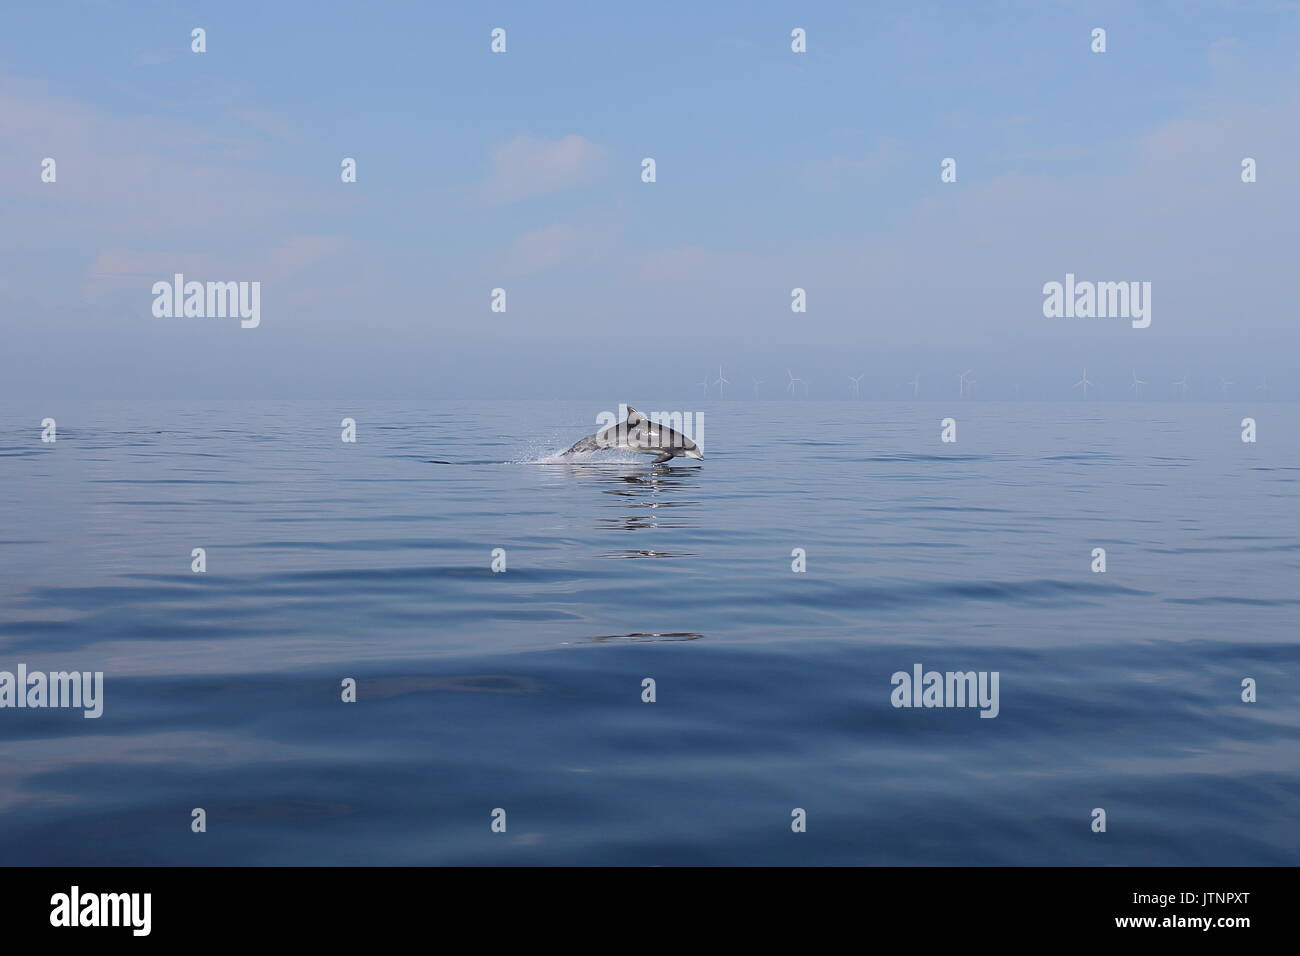 Wild Bottle-nose Dolphin leaping out of a flat calm blue sea on a sunny day at Prestatyn North Wales. - Stock Image